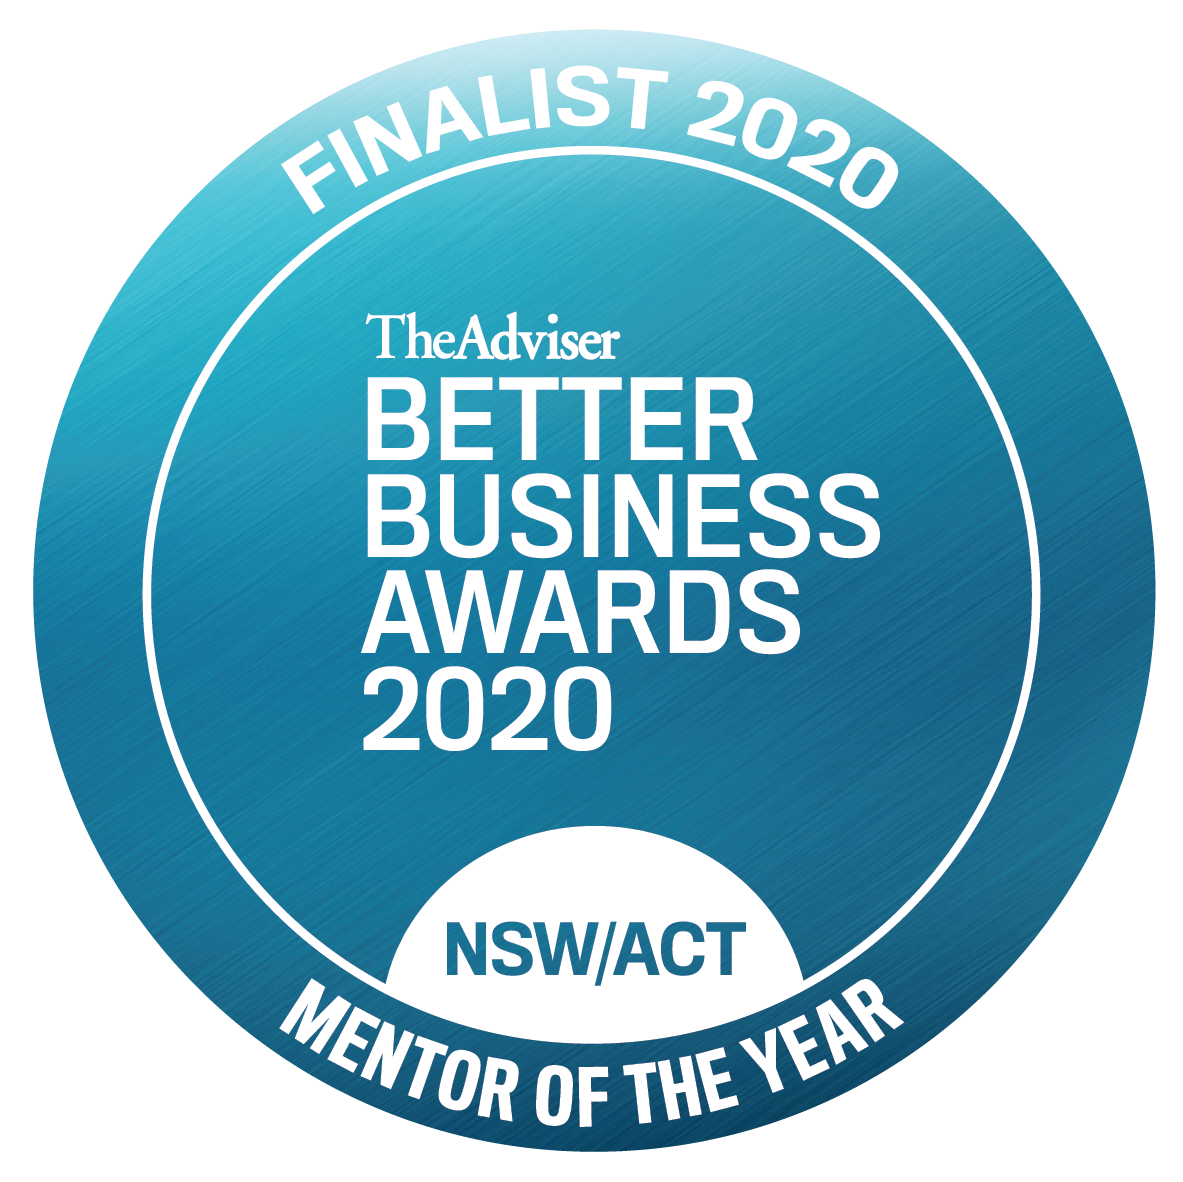 BBA 2020 finalist NSW Mentor of the Year